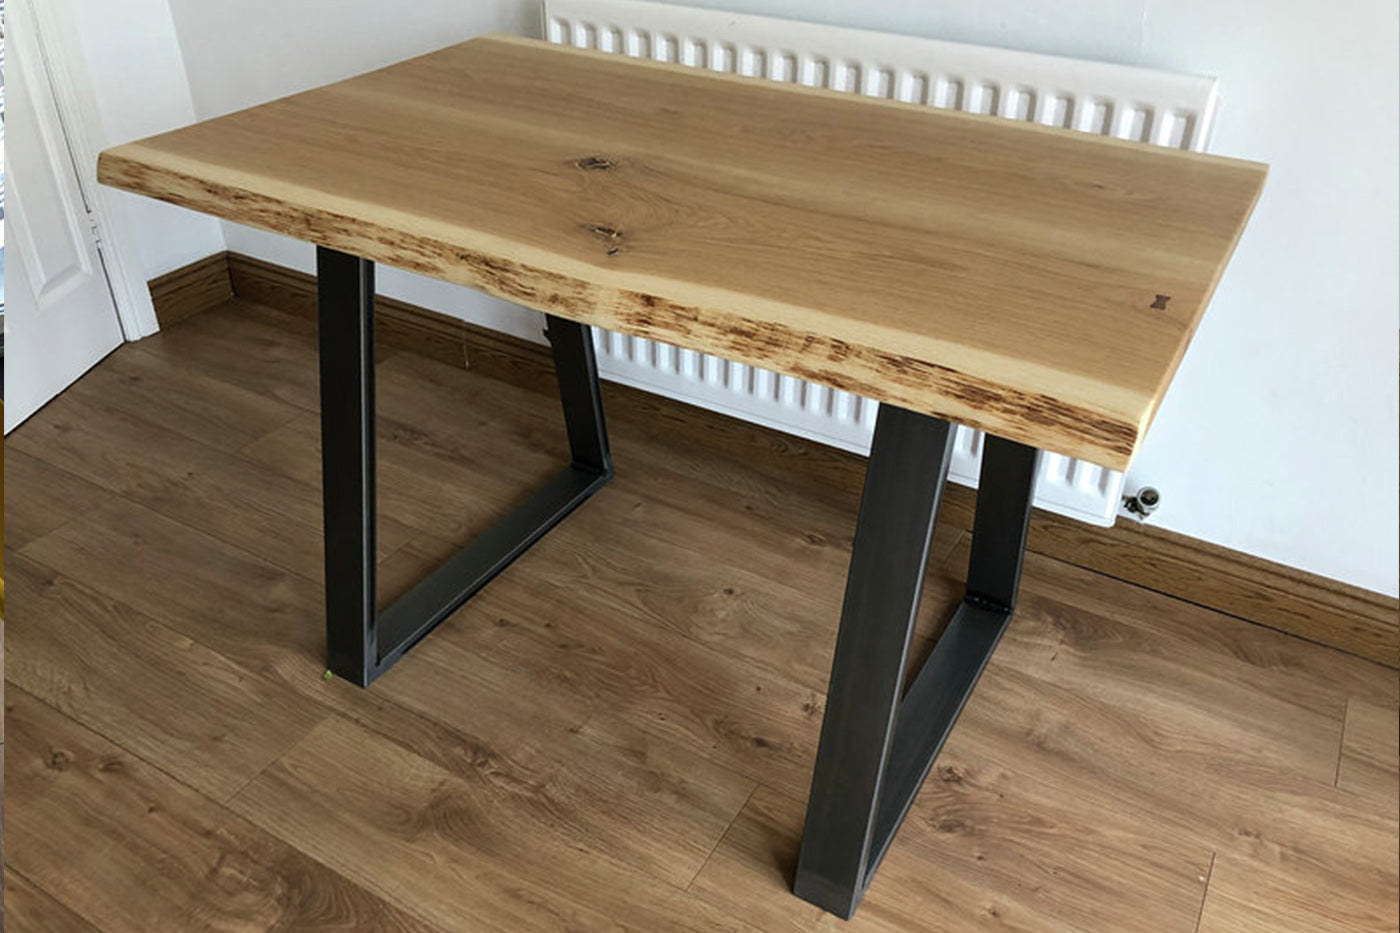 waney edge table with steel legs